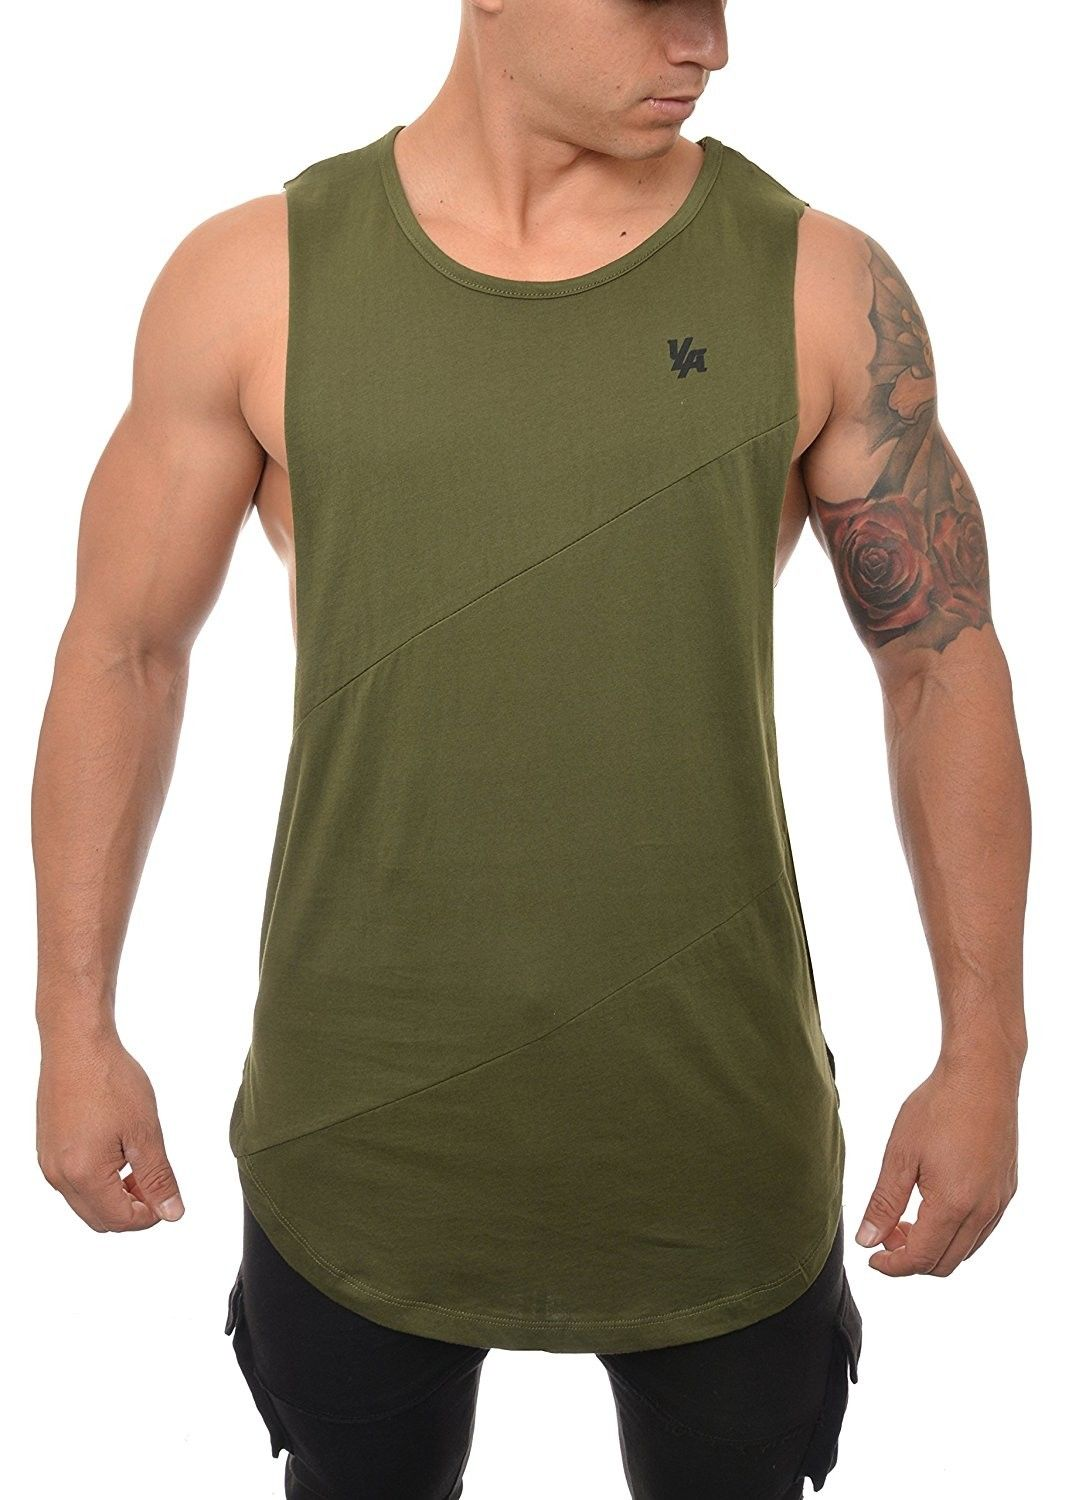 8fff4a67b2a4 Men's Clothing, Active, Active Shirts & Tees, Long Tank Tops For Men Muscle  Shirt Bodybuilding Gym Athletic Training Sports Everyday Wear 306 - Olive  ...